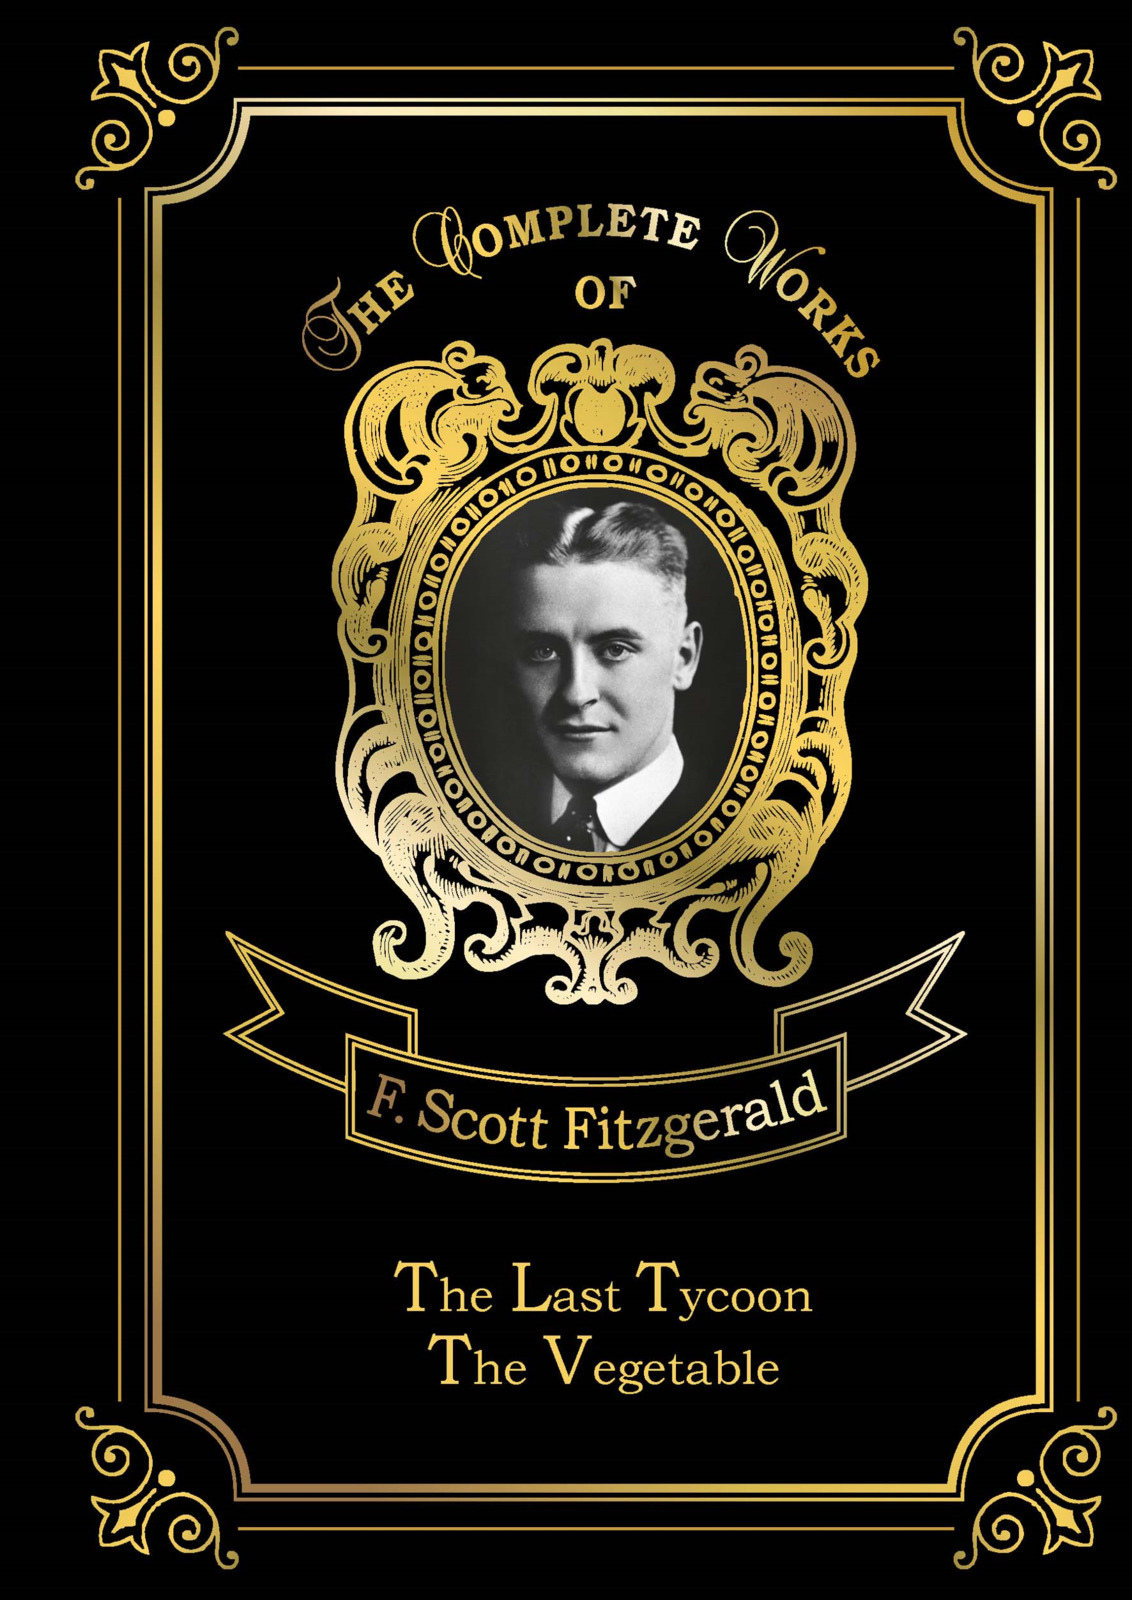 F. S. Fitzgerald The Last Tycoon & The Vegetable the last one